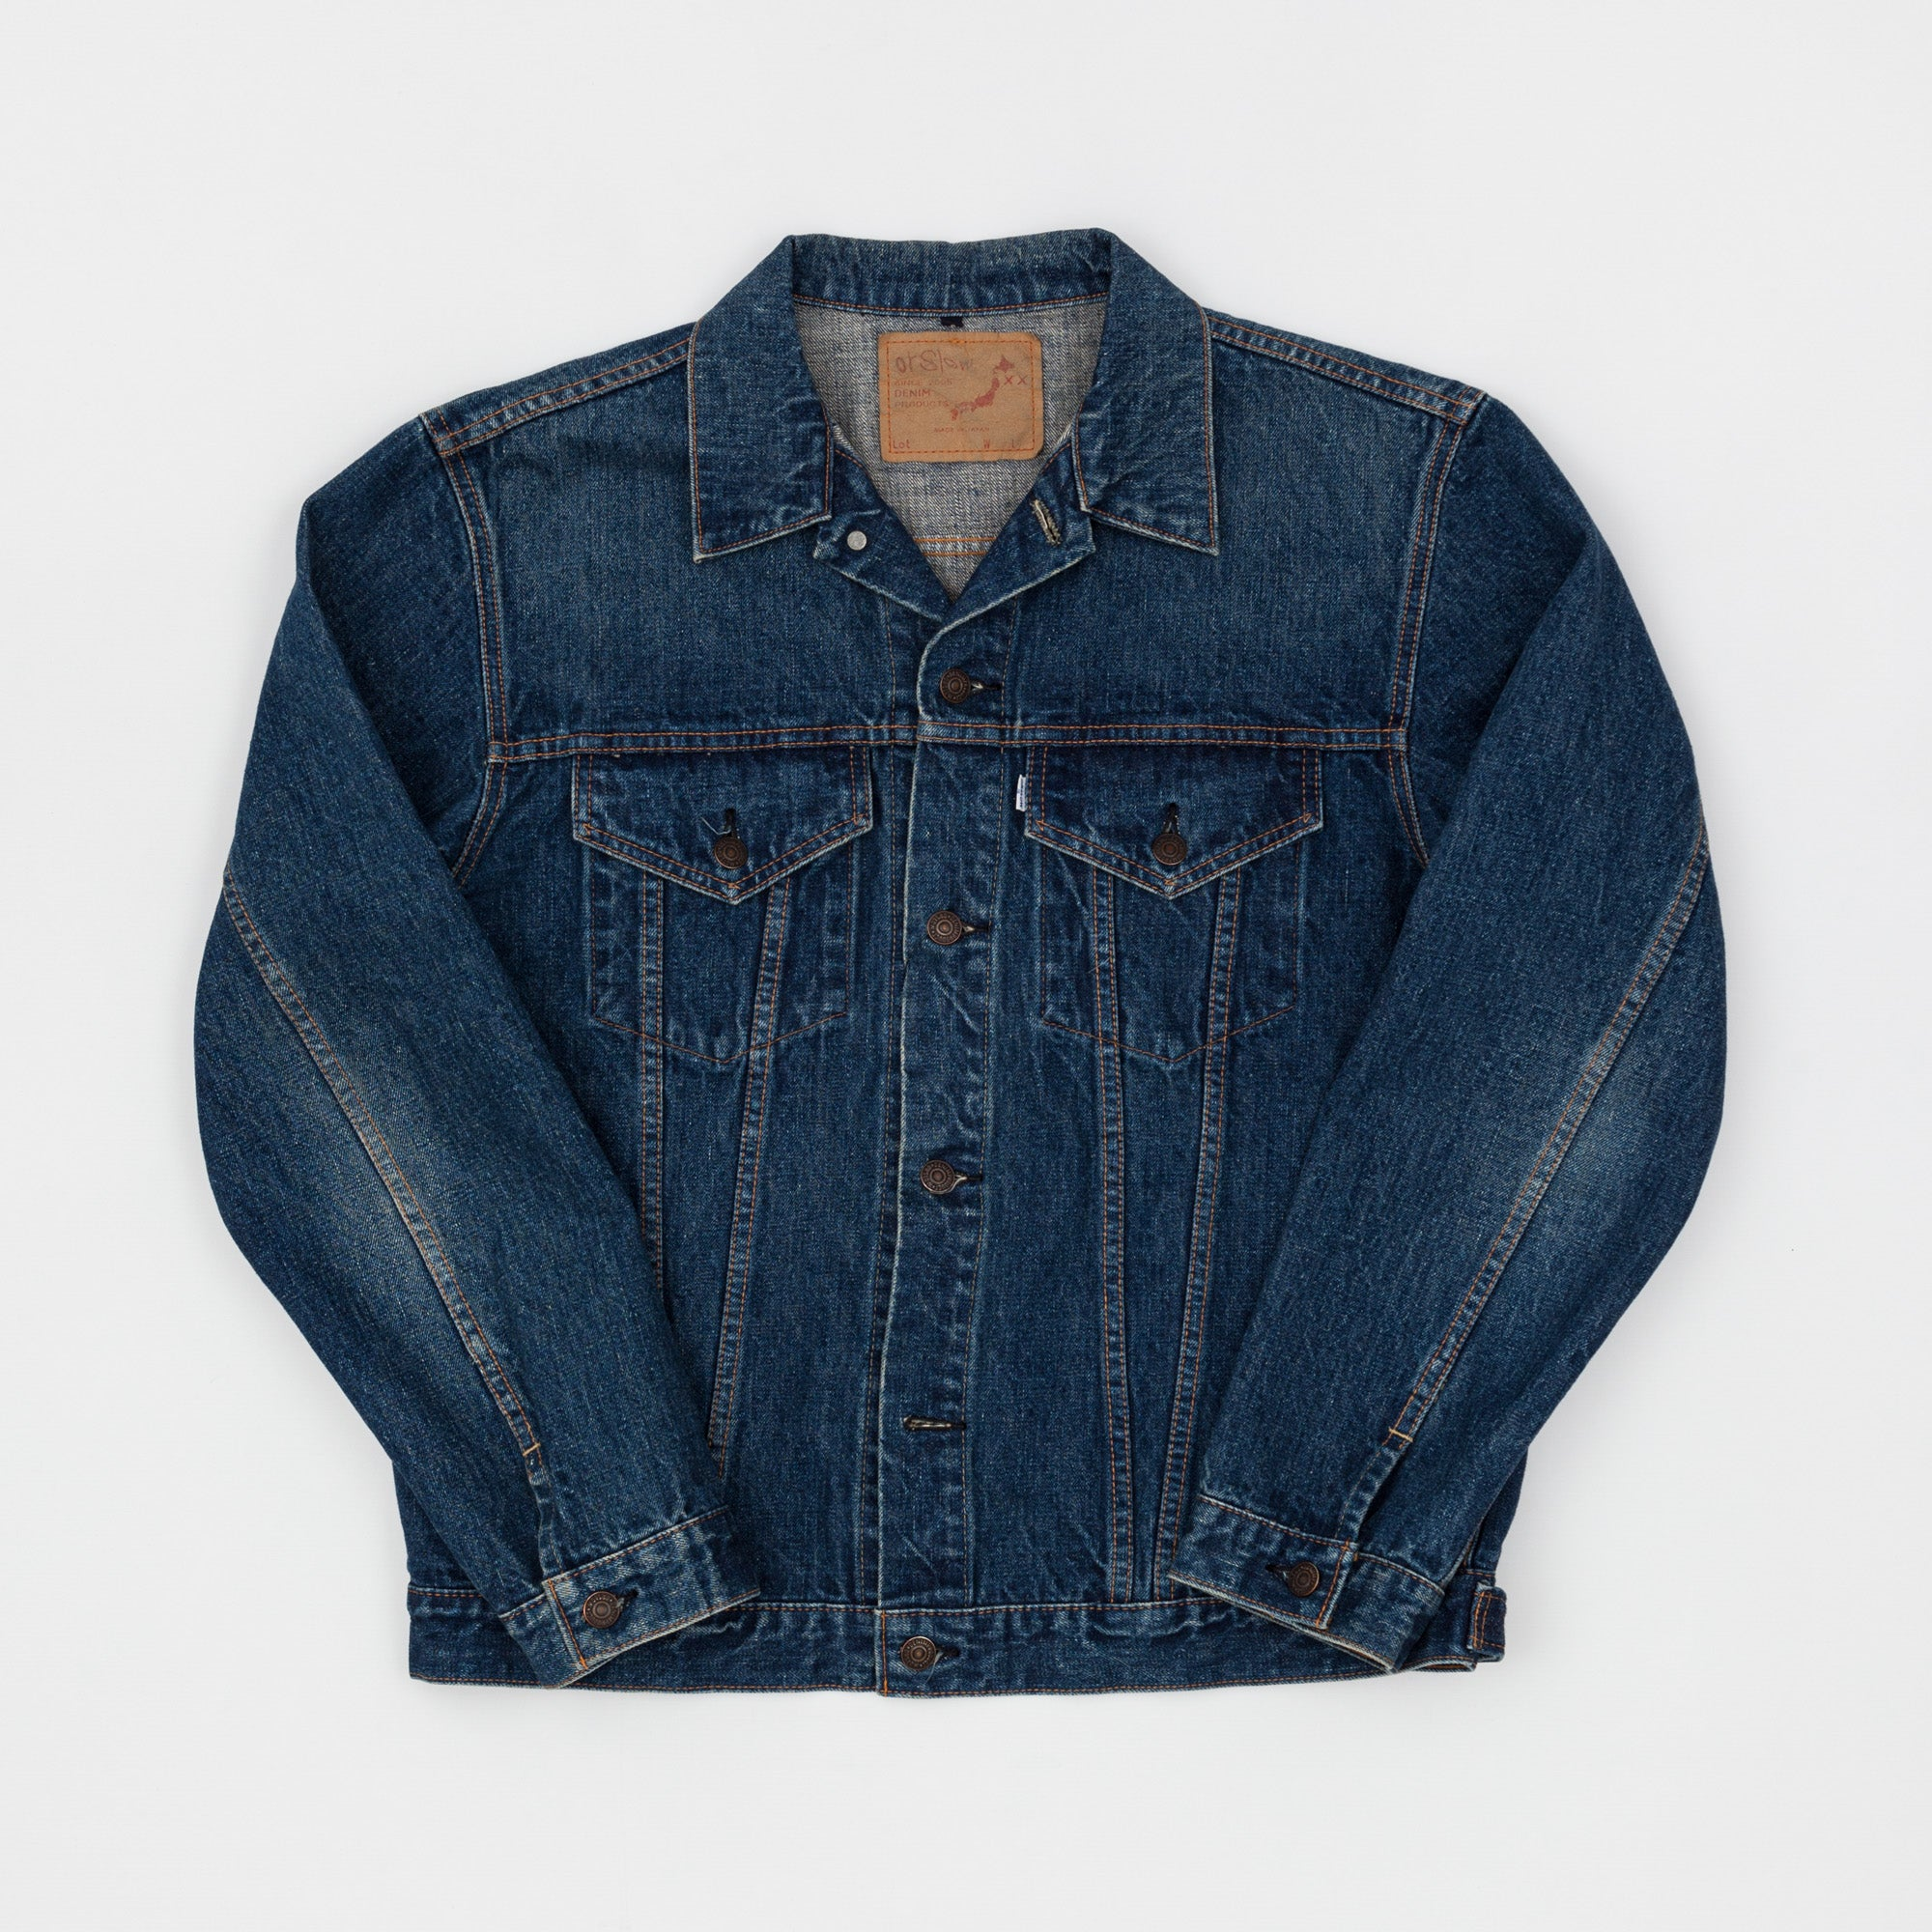 1950s Denim Jacket